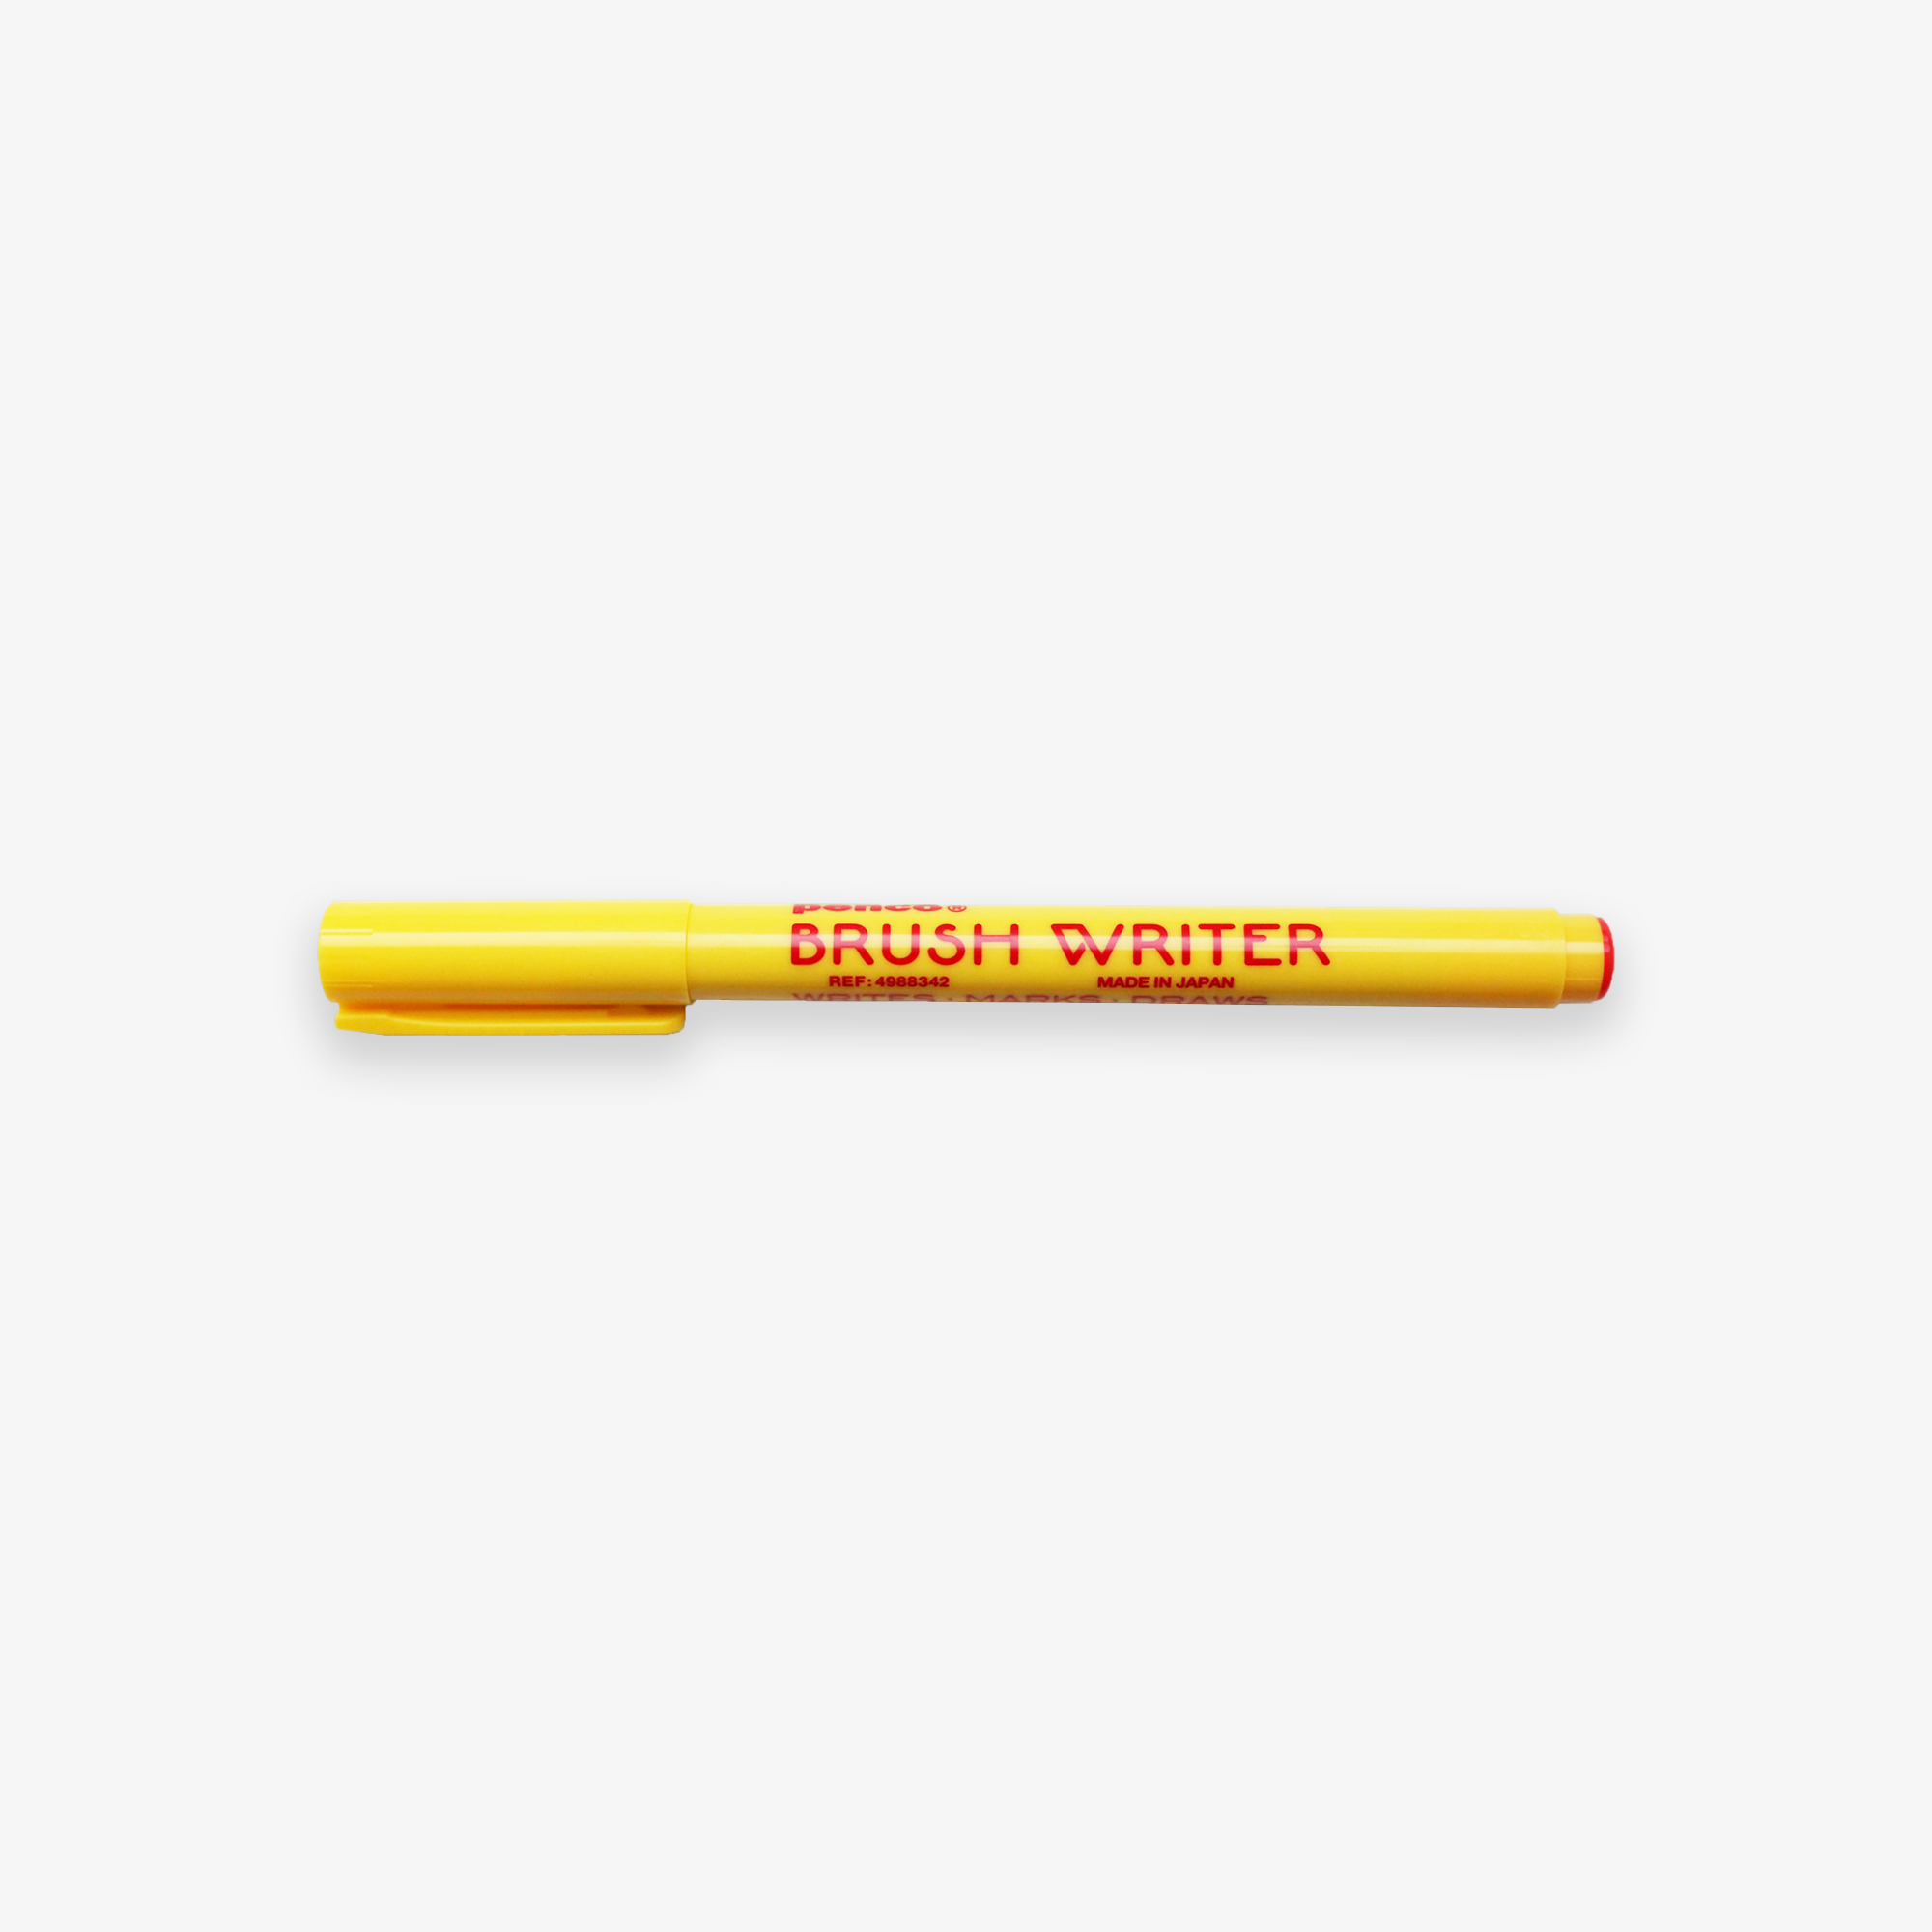 BRUSH WRITER // RED